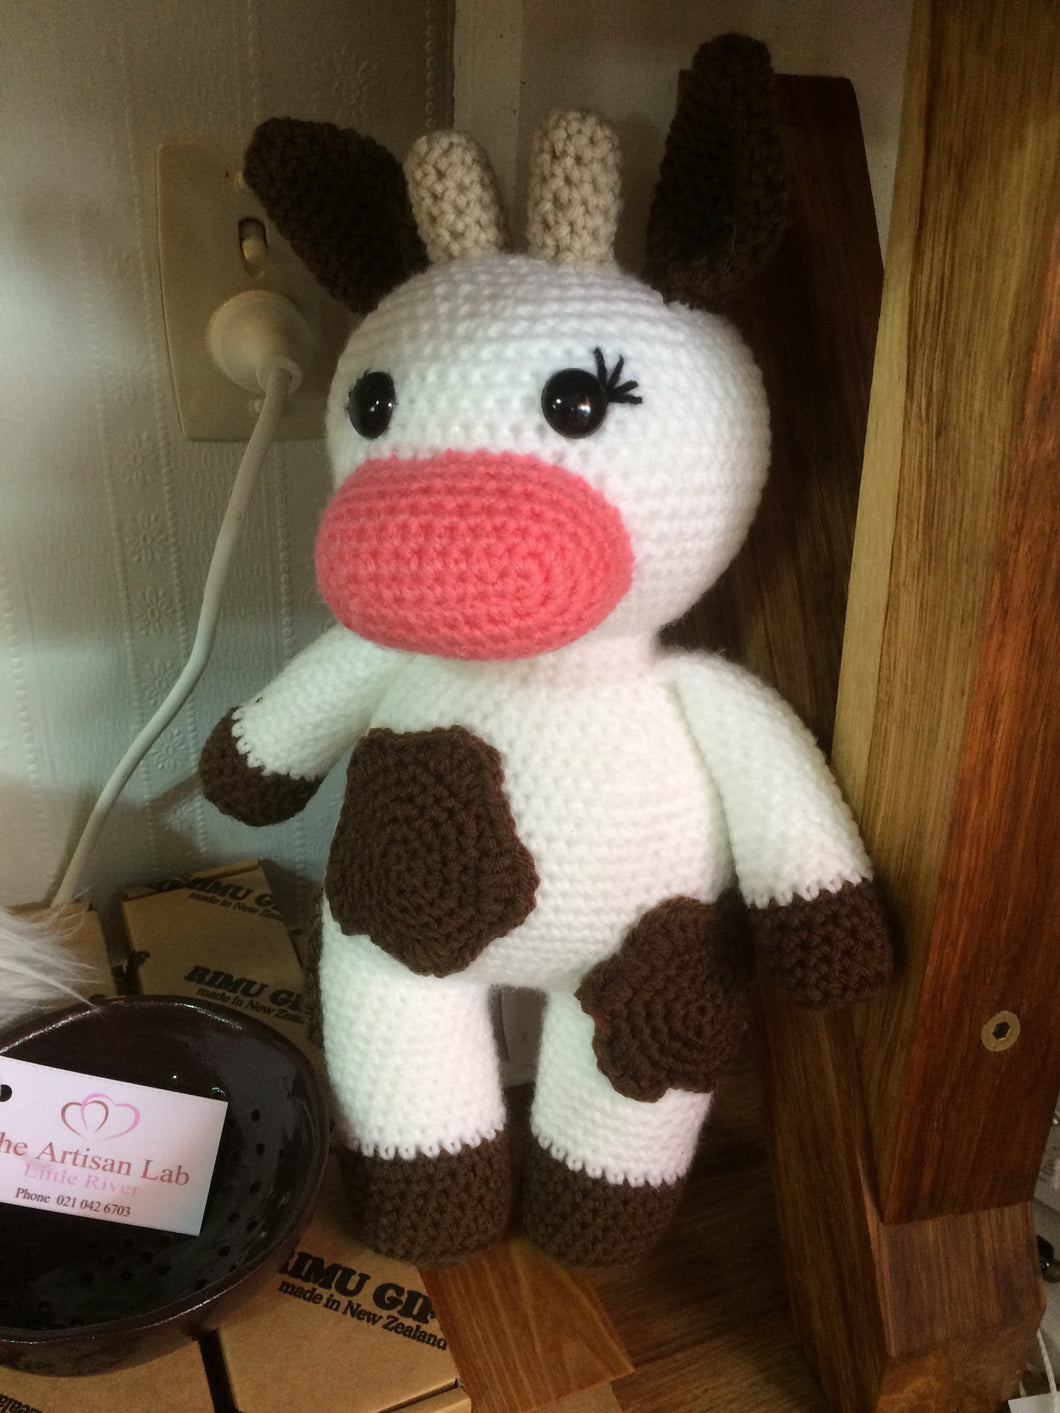 Handmade crocheted cow